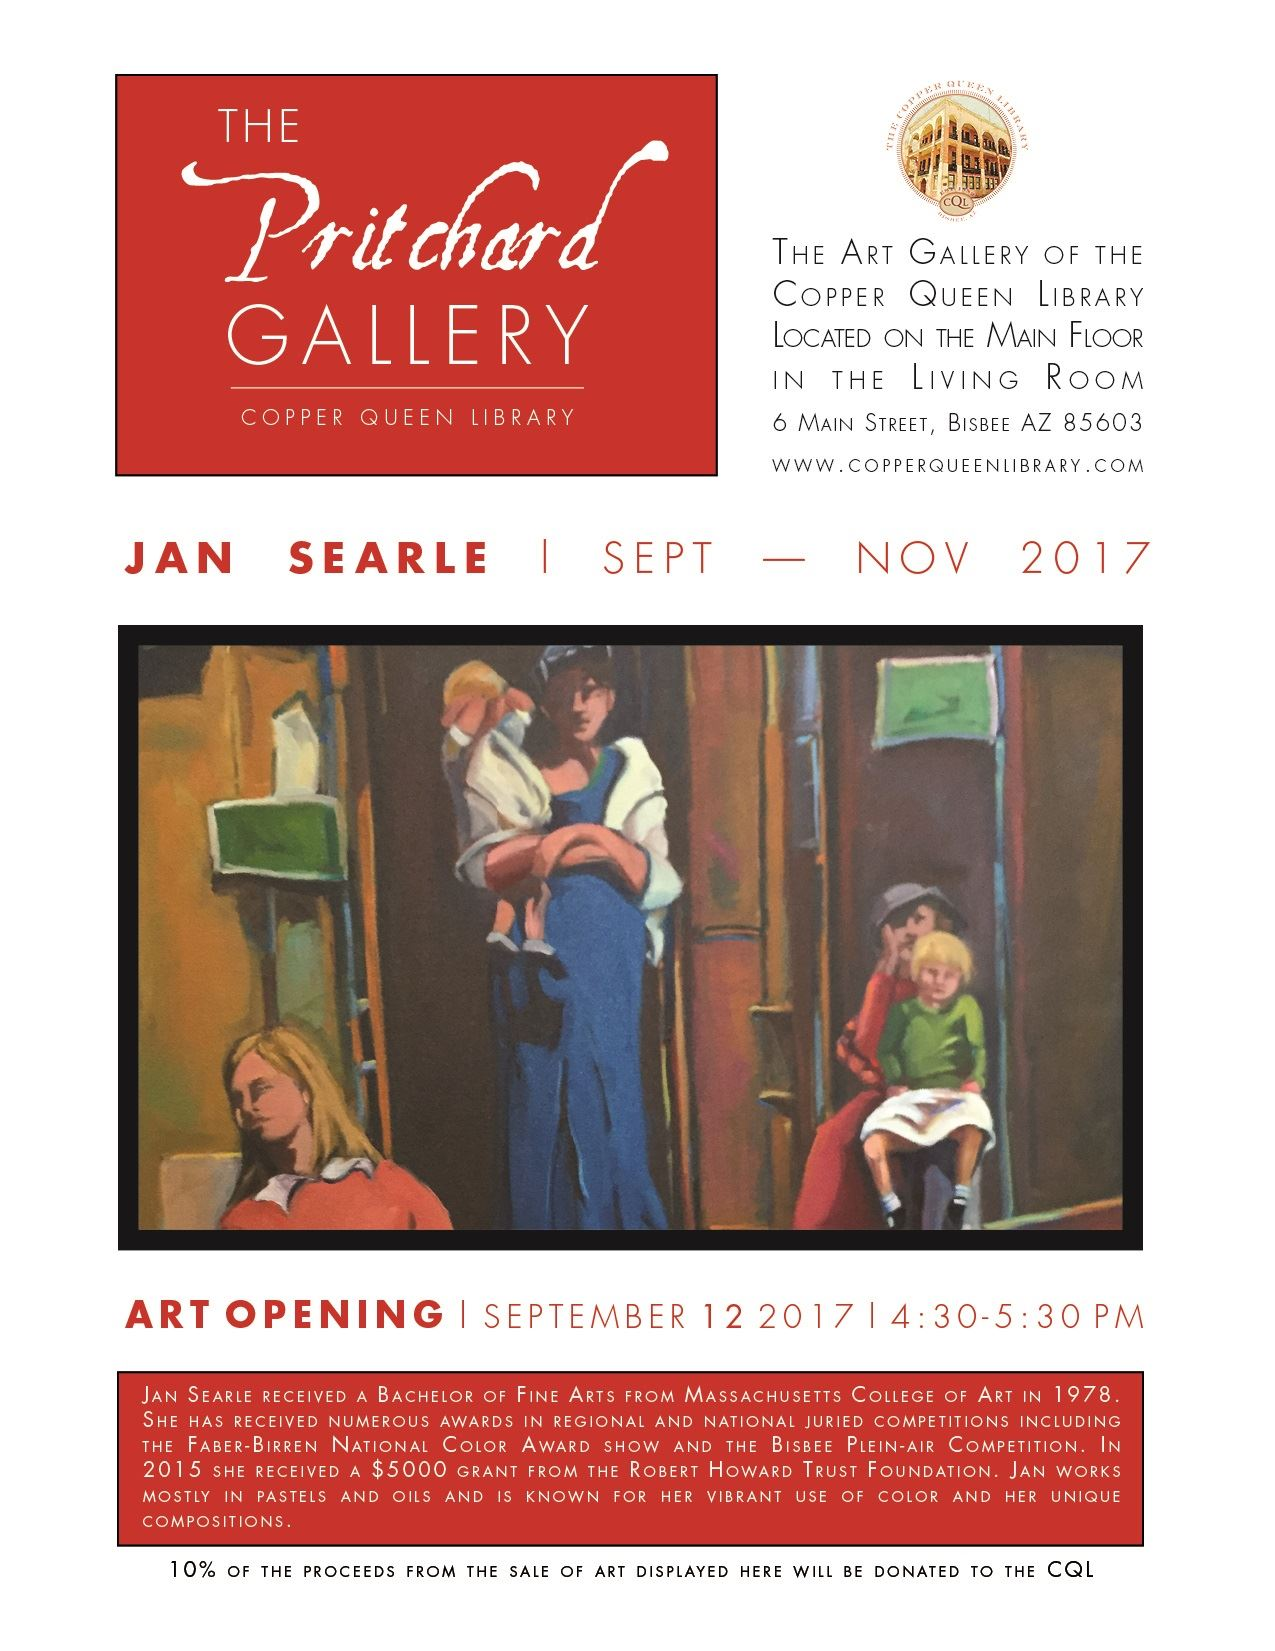 CQL PRITCHARD GALLERY JAN SEARLE